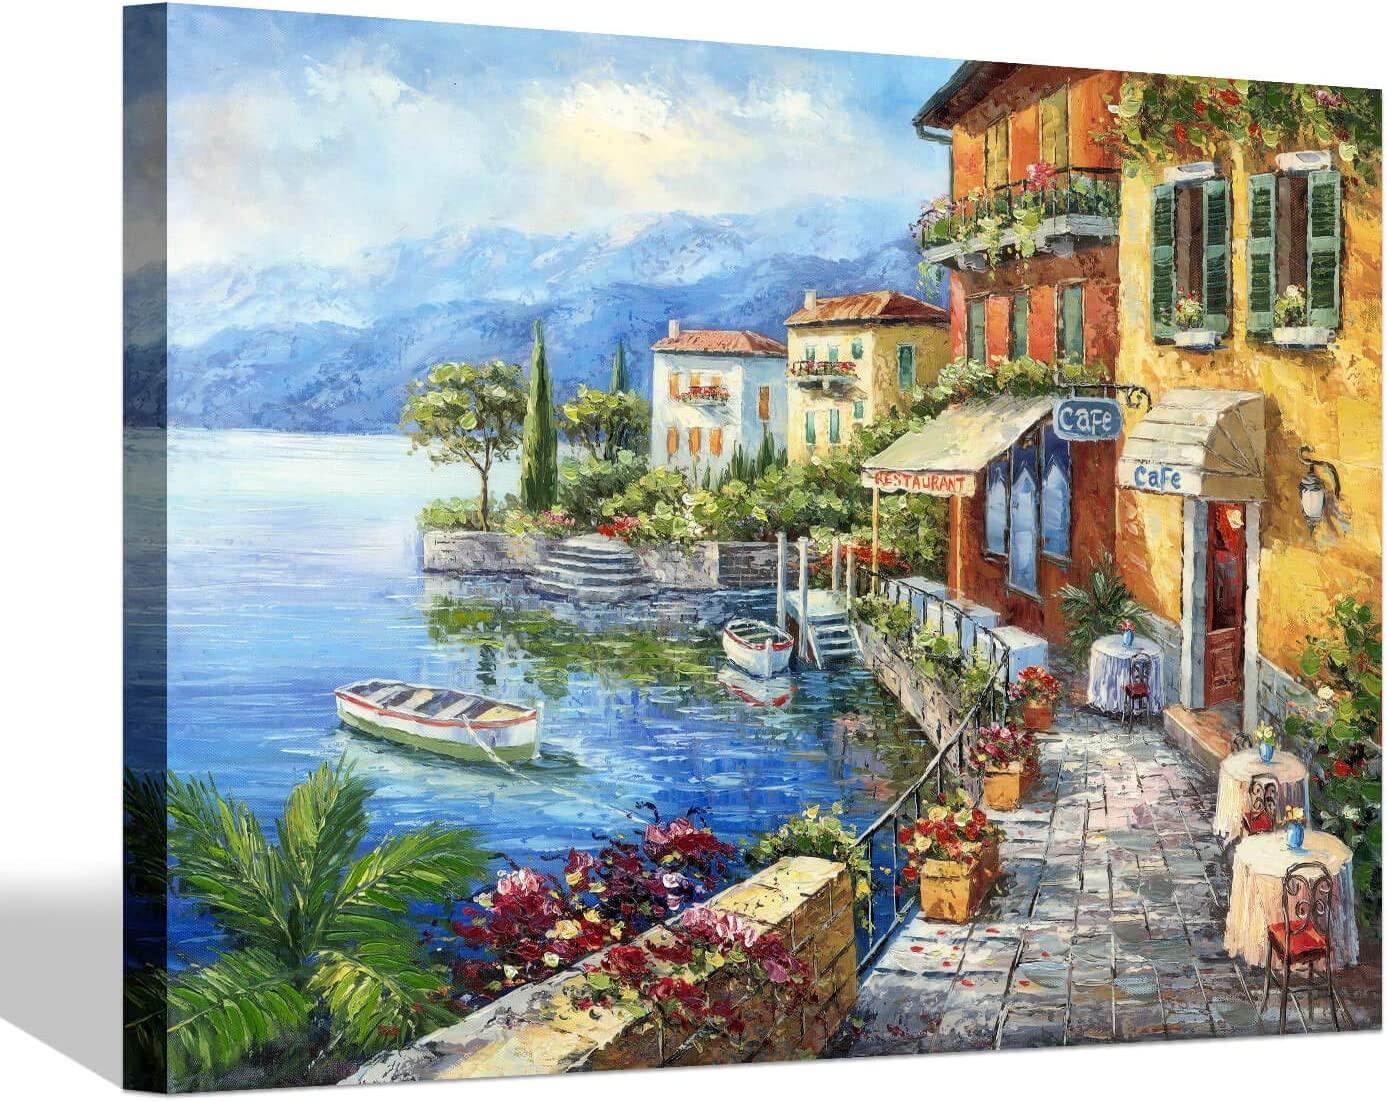 Mediterranean Town Painting Canvas Picture - Coastal City Artwork Wall Art Reproduction for Living Room (24'' x 18'' x 1 Panel)